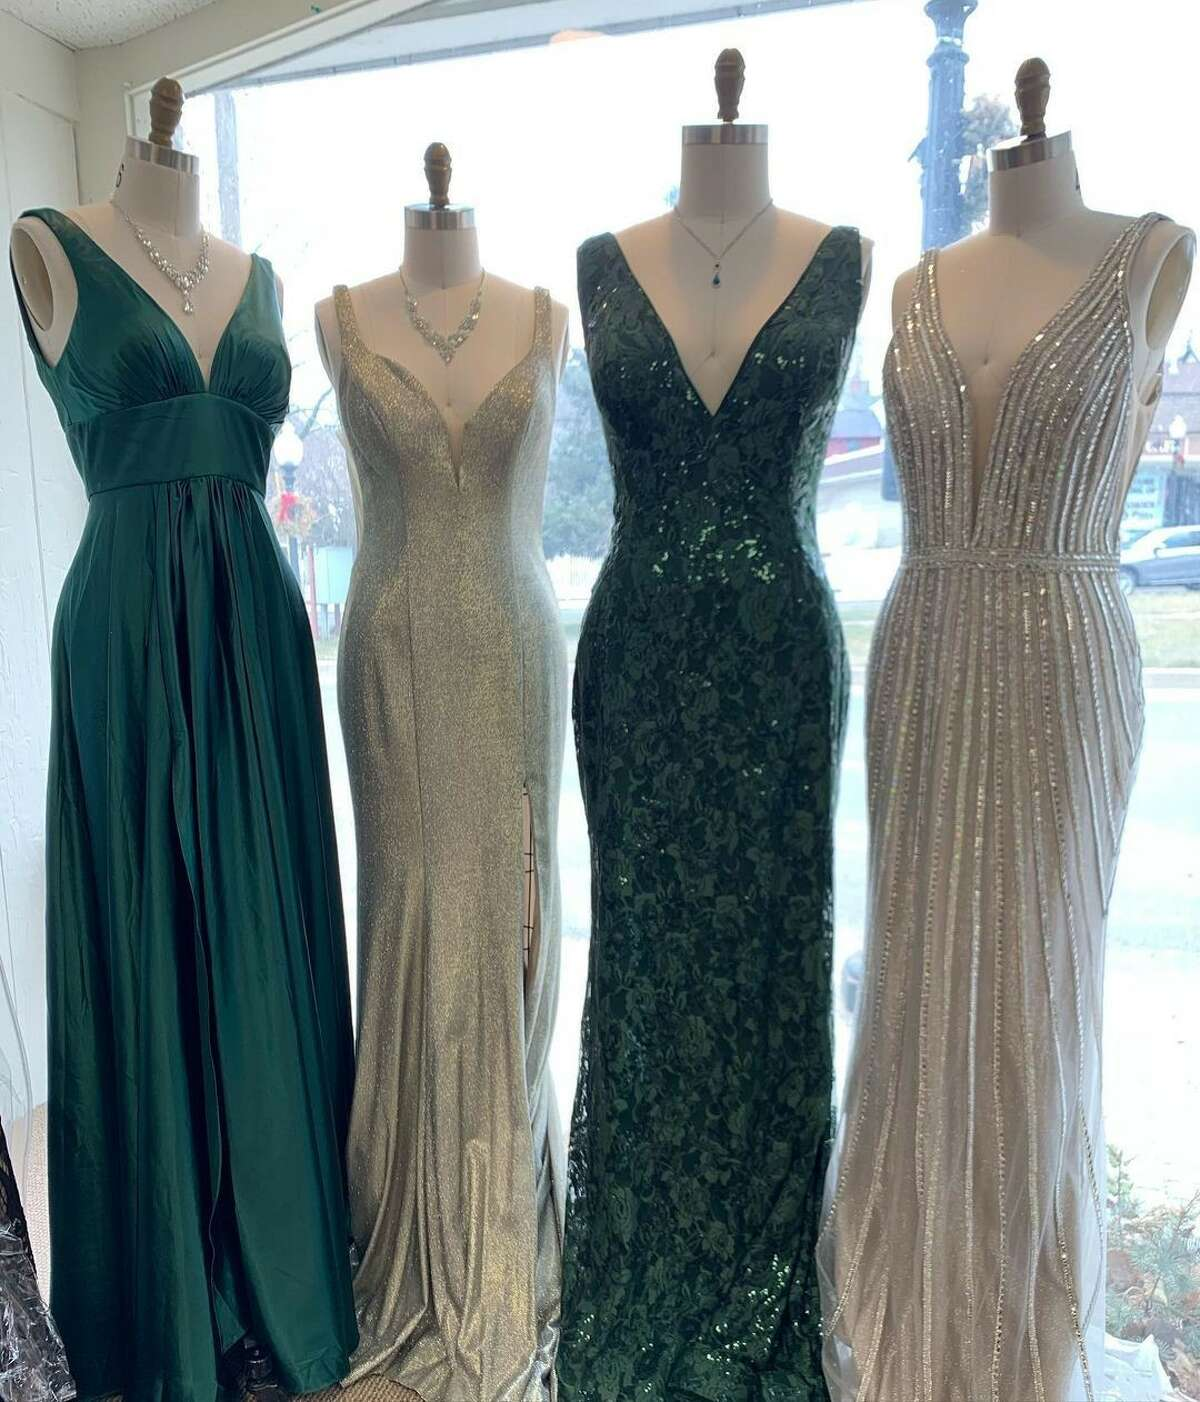 Beaded prom gowns available at Occasions Bridal in Bethel, Conn., located on 6 PT Barnum Square. Store owner Gail Furniss said her prom shoppers are selecting styles that range from tulle ballgowns to sequined, form-fitting styles for 2021.